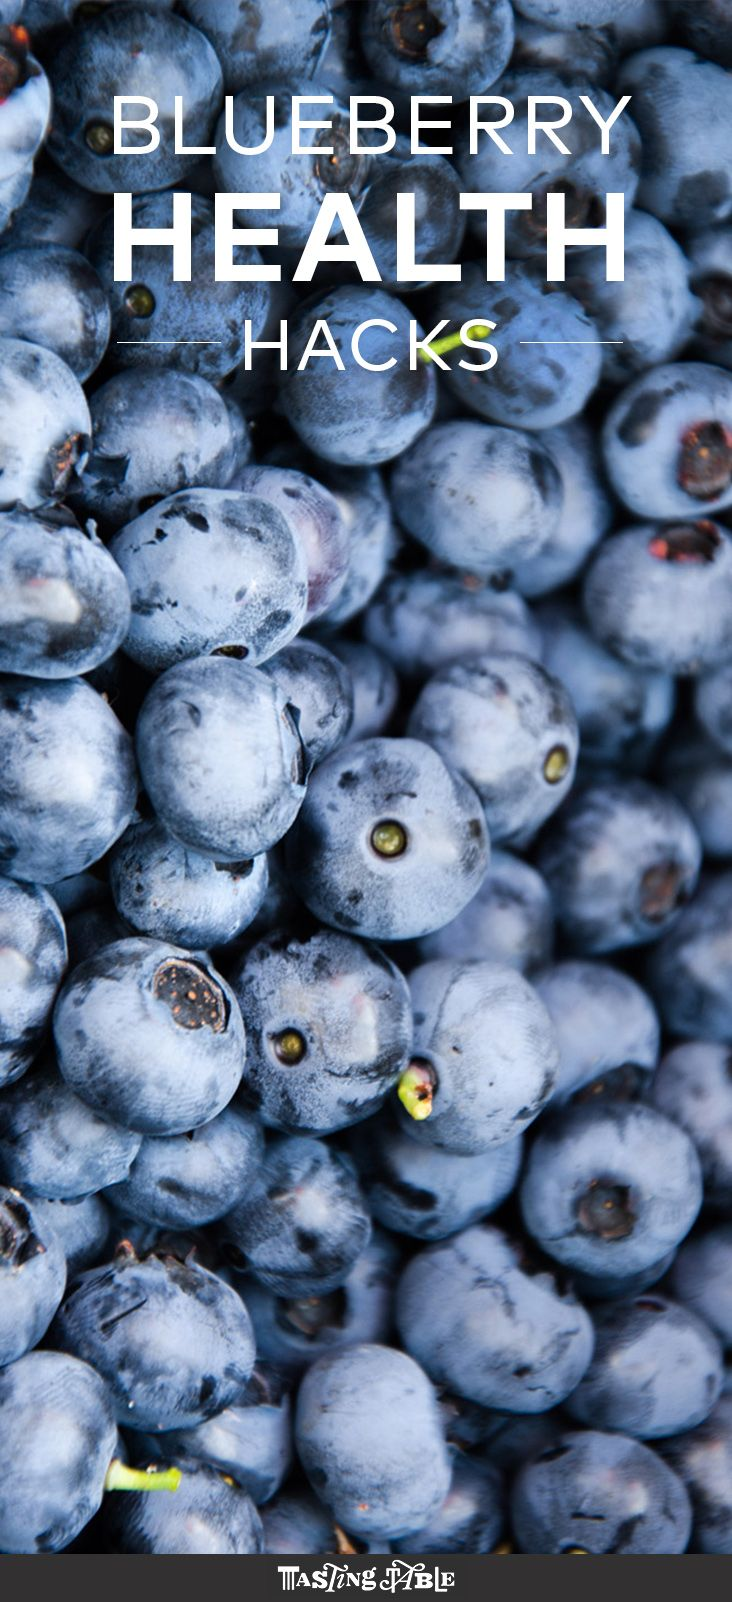 New research shows that blueberries might help reduce the effects of Alzheimer's.